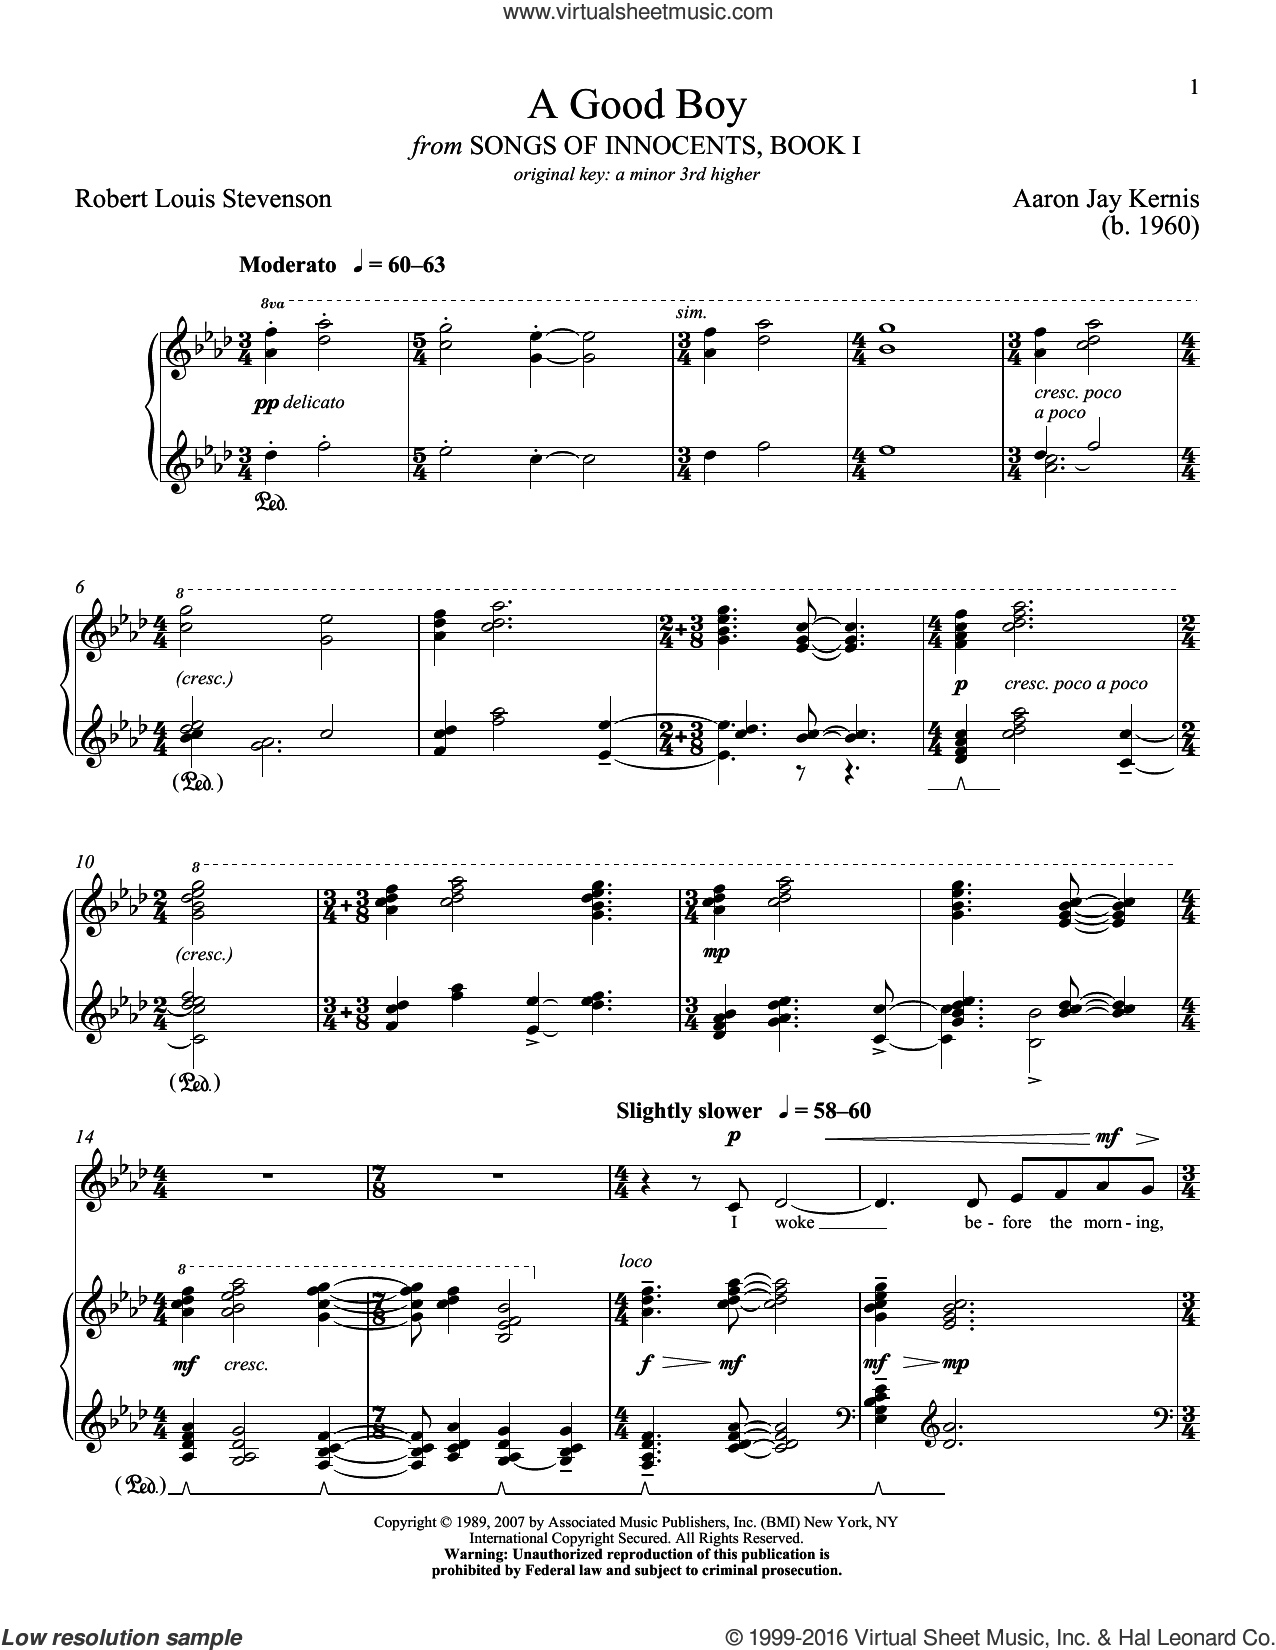 A Good Boy sheet music for voice and piano (Low ) by Aaron Jay Kernis, Richard Walters and Robert Louis Stevenson, classical score, intermediate voice. Score Image Preview.